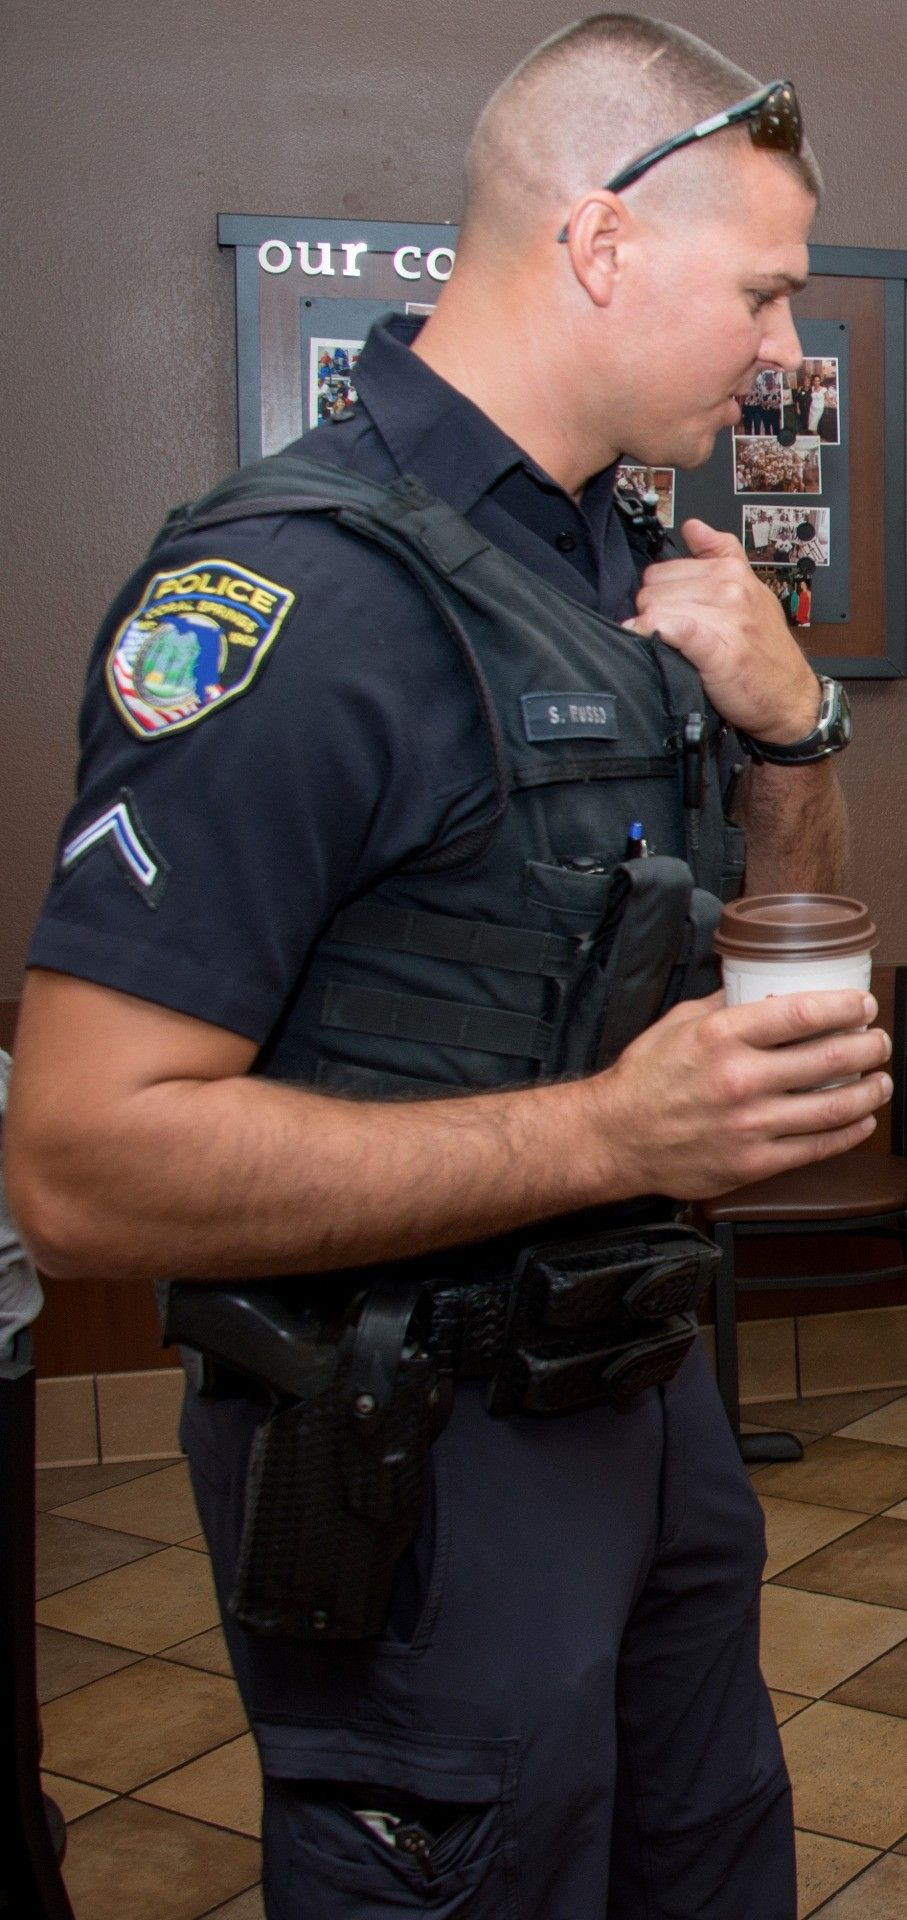 Pin By E Y On Uniformed Pinterest Hot Cops And Eye Candy